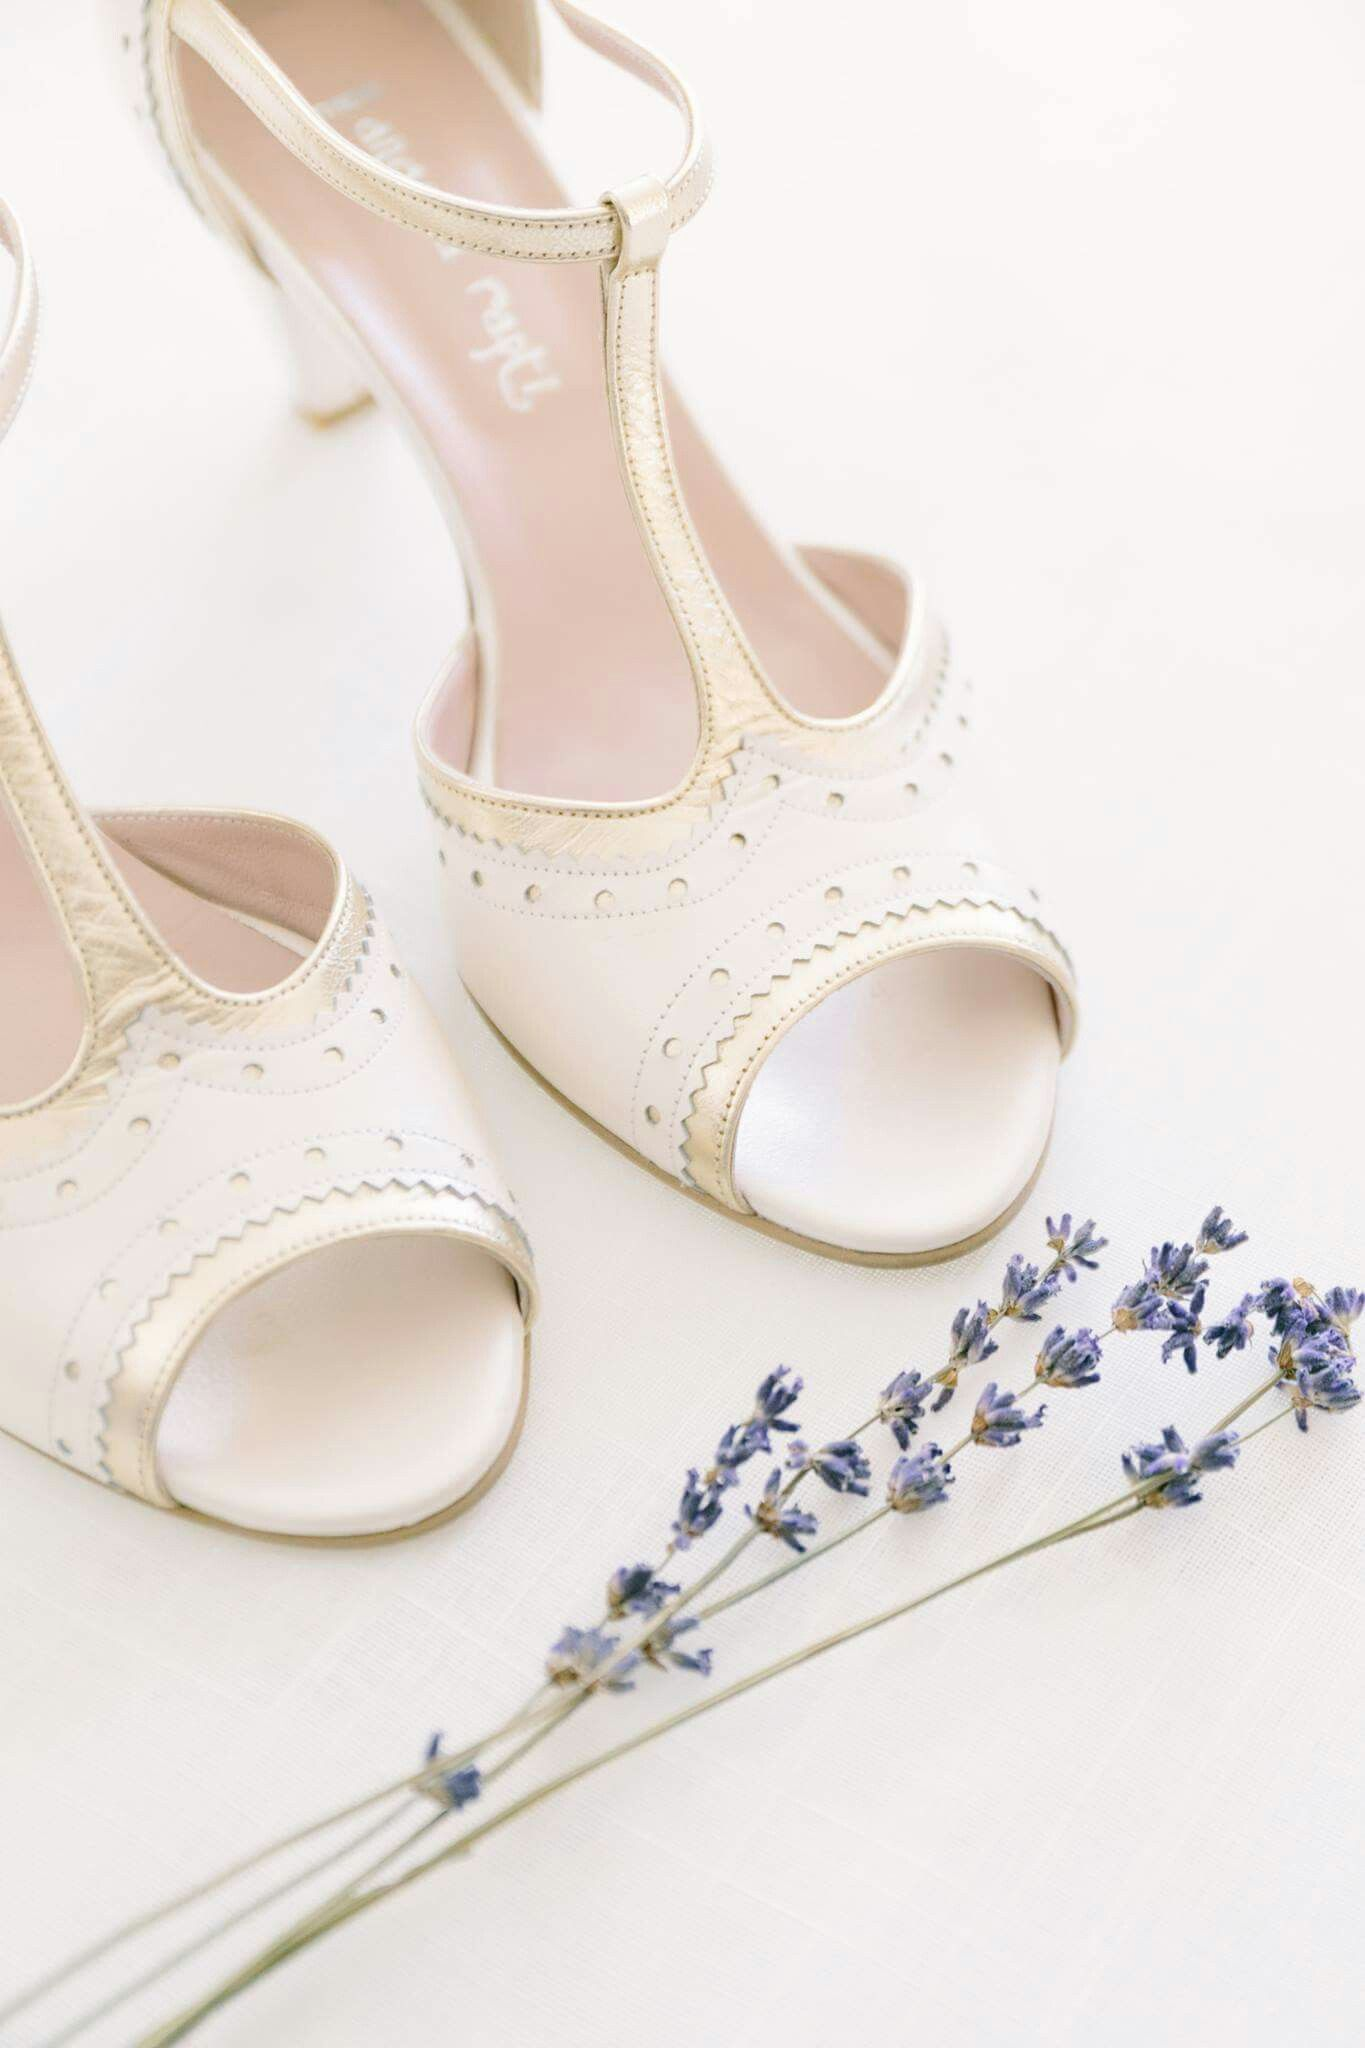 Handmade Wedding Shoes By Angela Rapti Story Day Pi